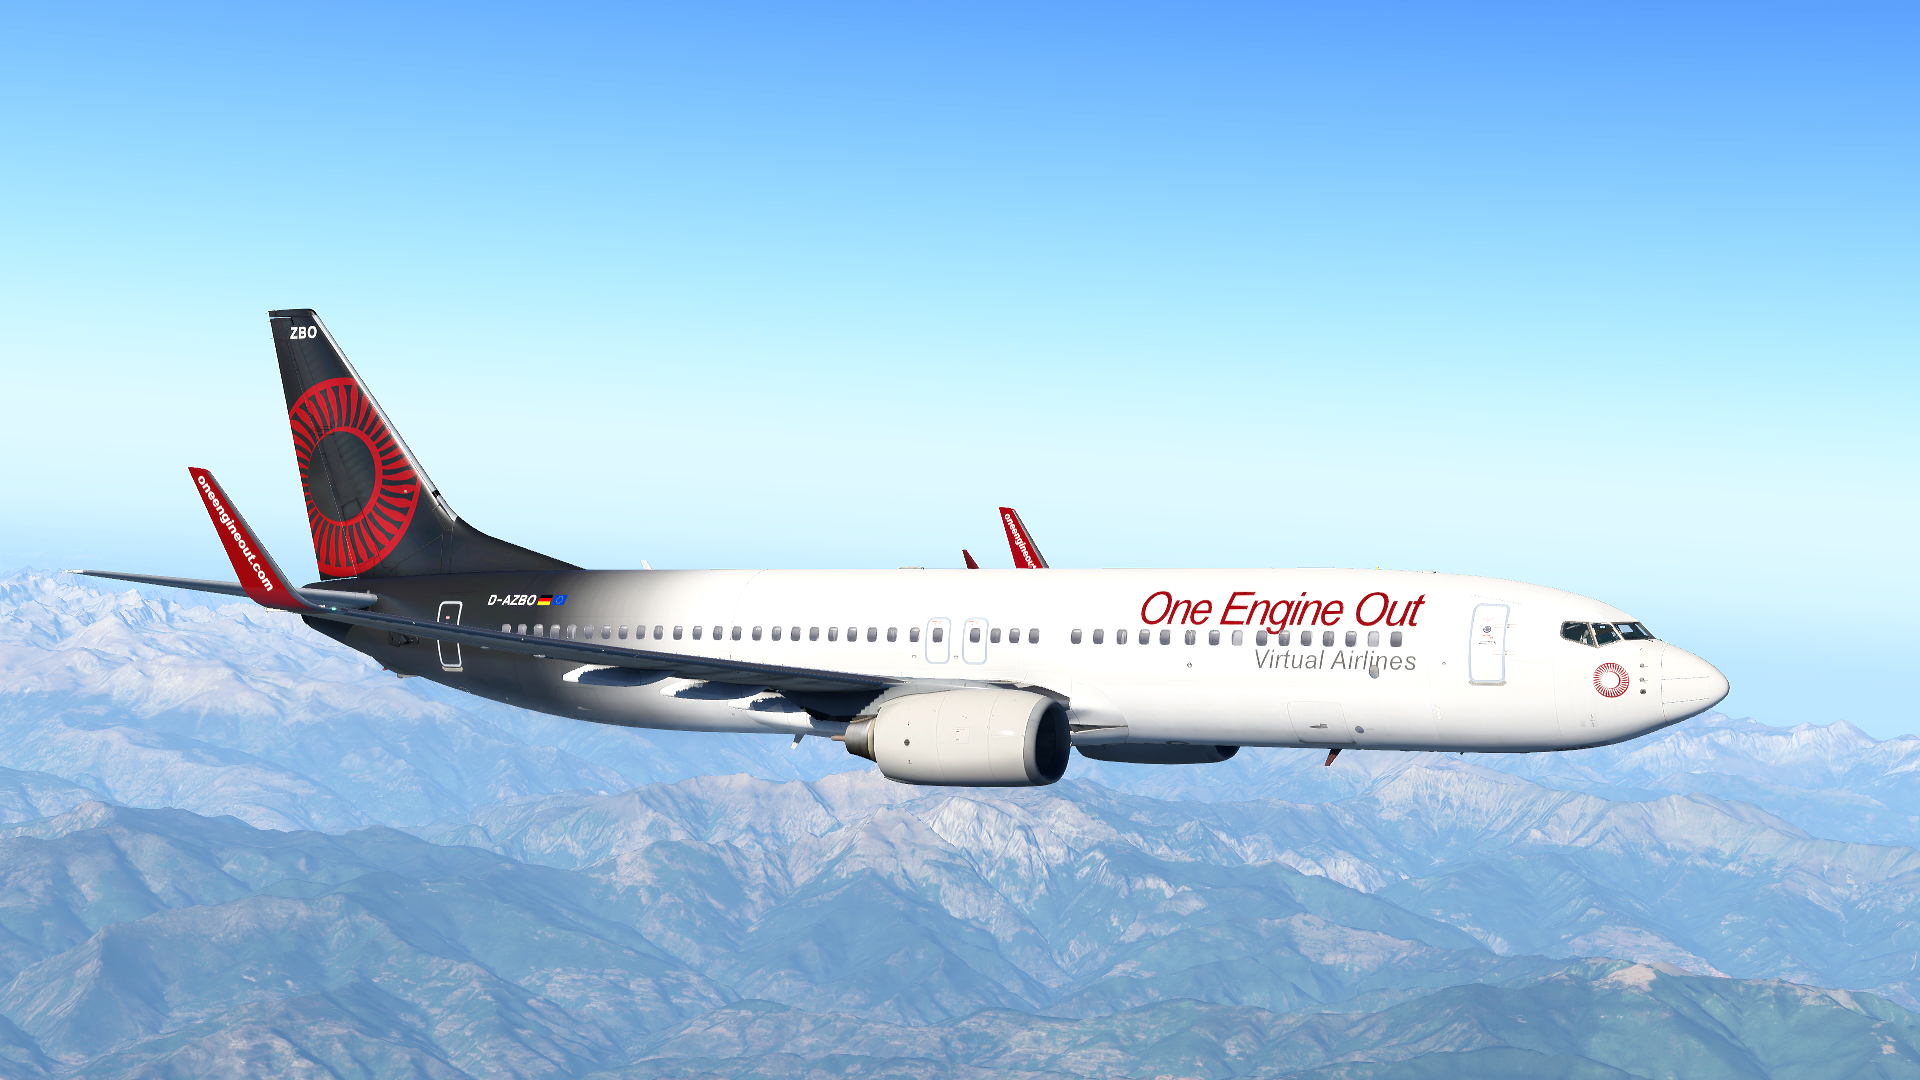 XP11 ZIBO OEO Livery from moriz99